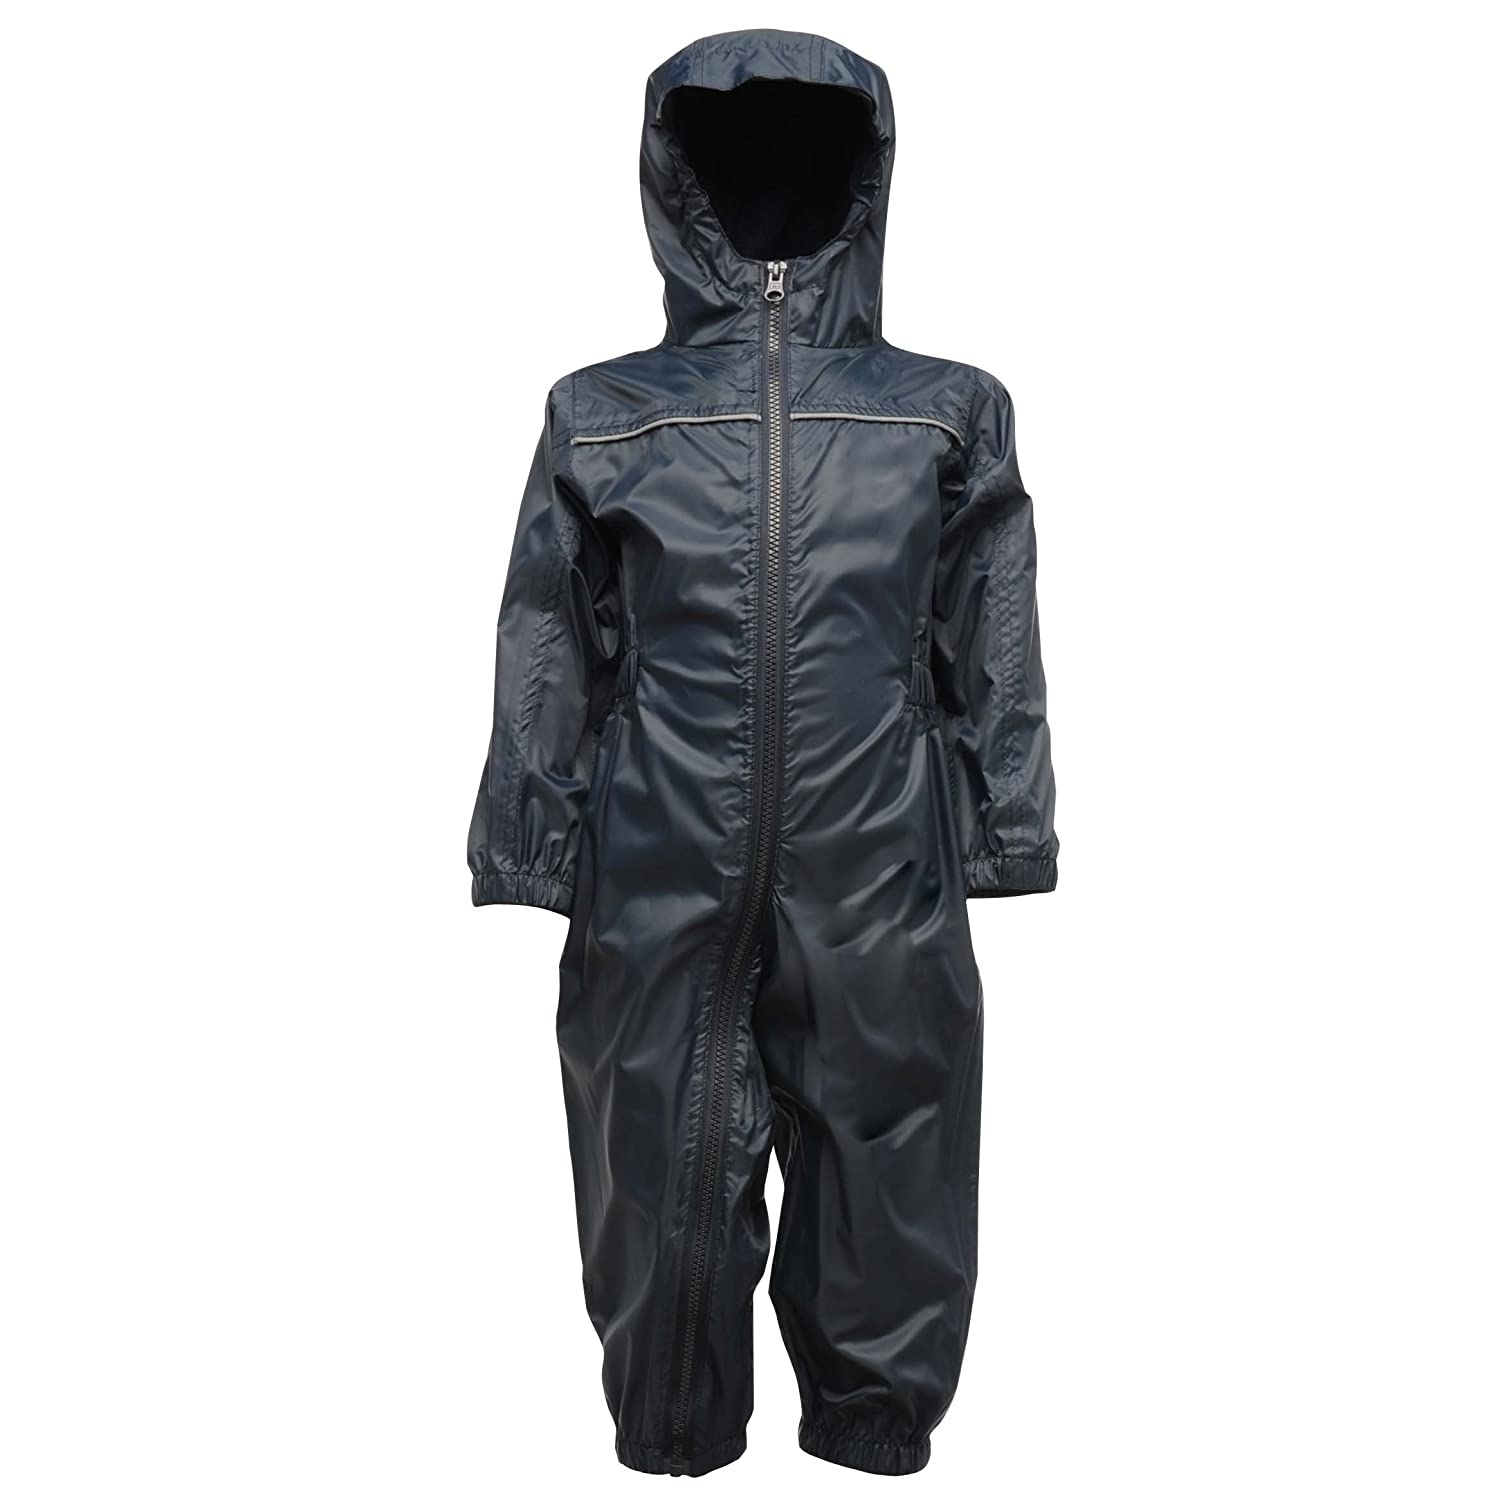 Regatta Professional Baby//Kids Paddle All In One Rain Suit Navy 24-36 Months